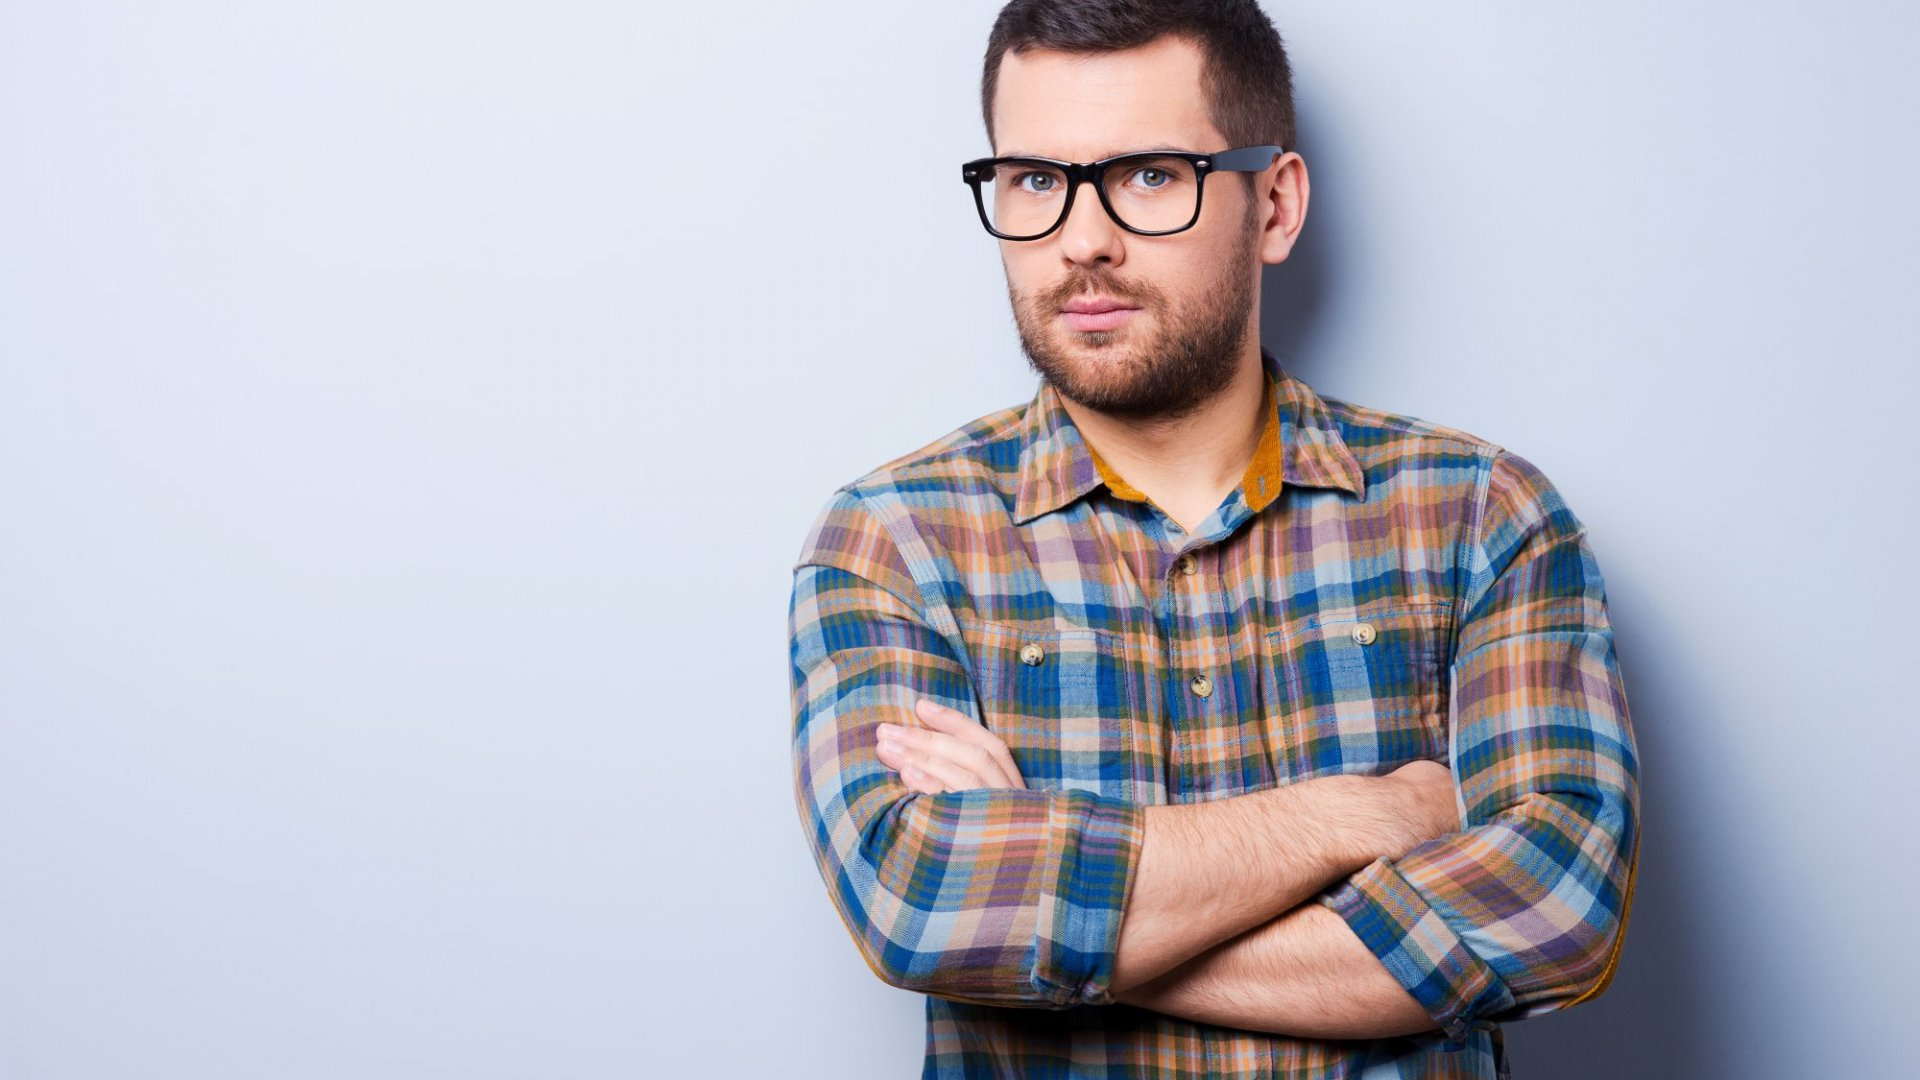 End Millennial Entitlement with These 5 Strategies